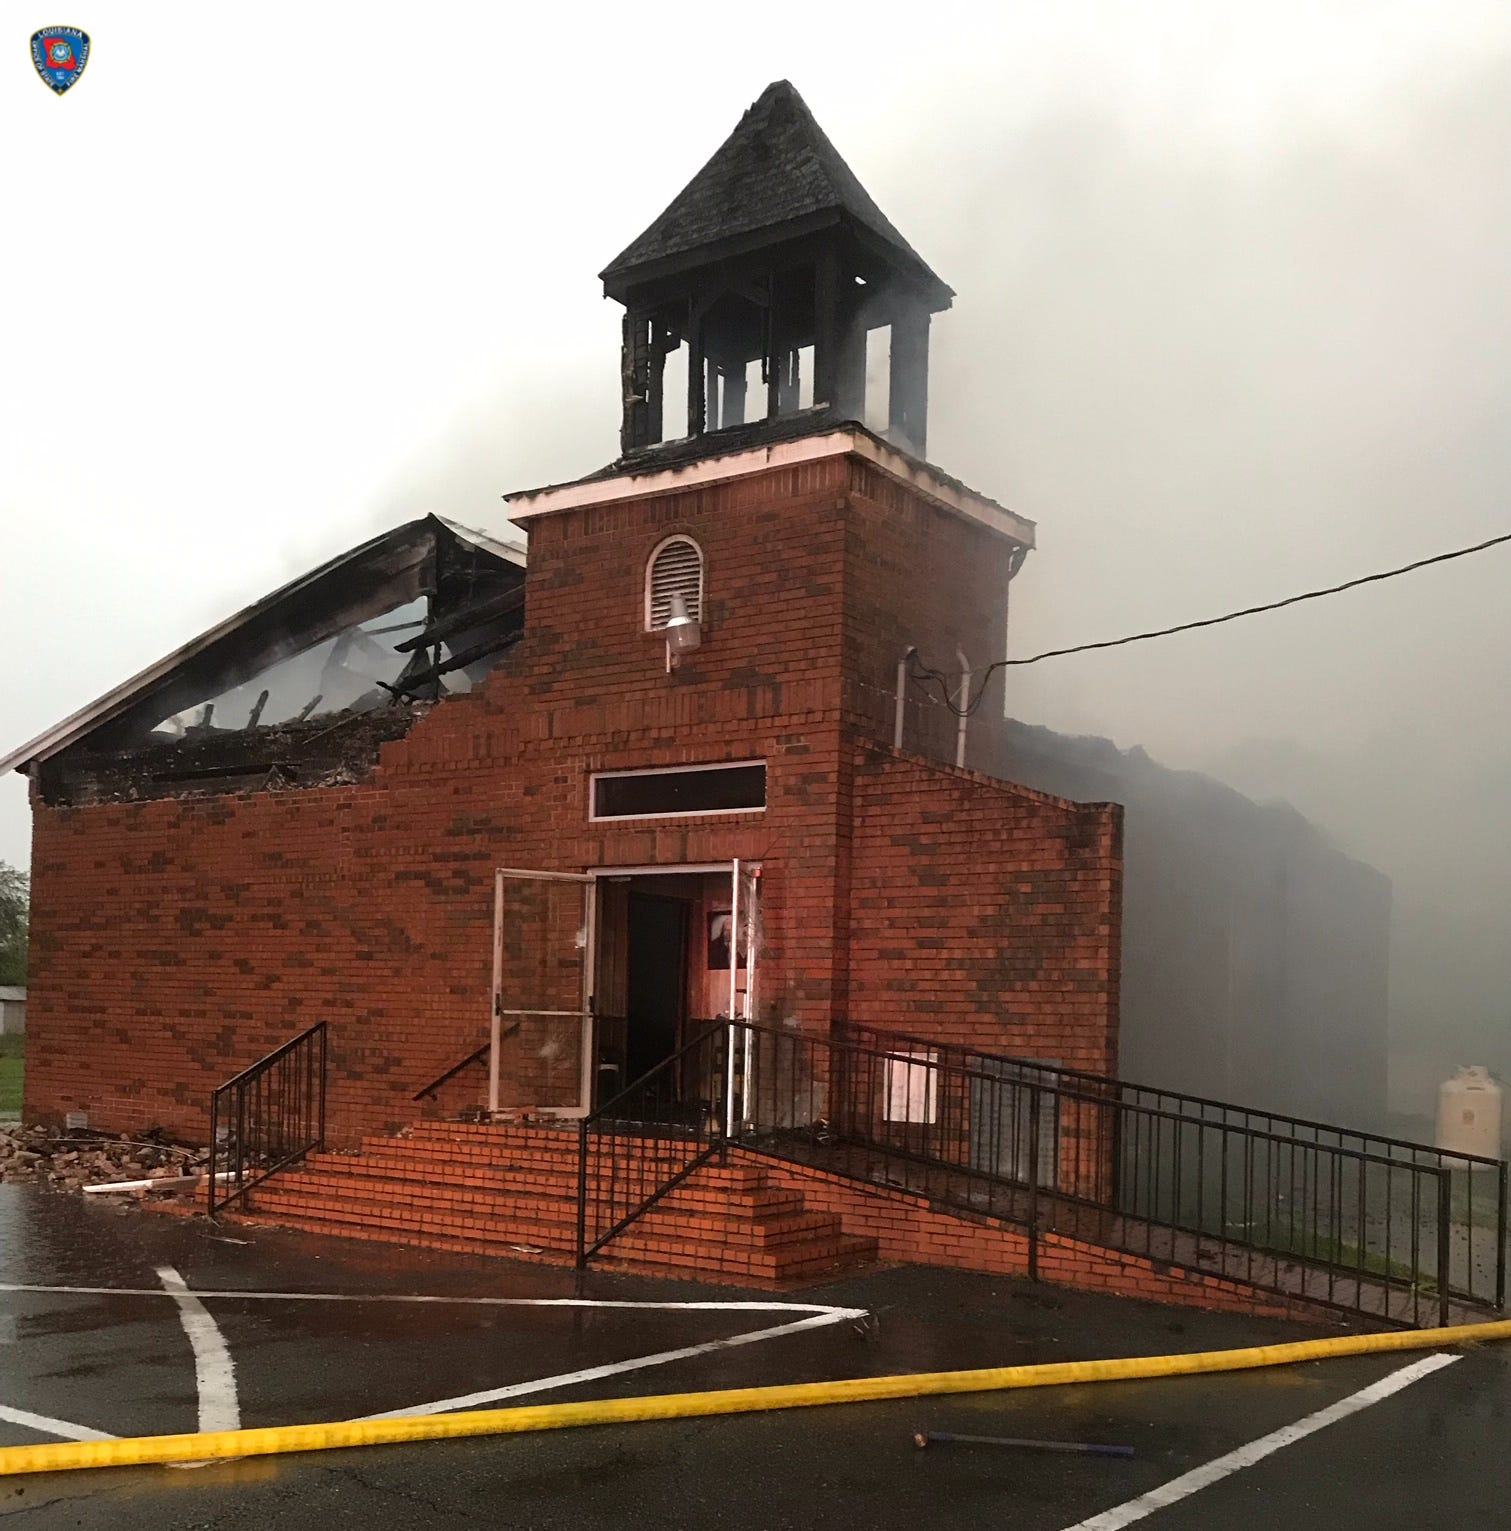 Third fire at a church reported in St. Landry Parish